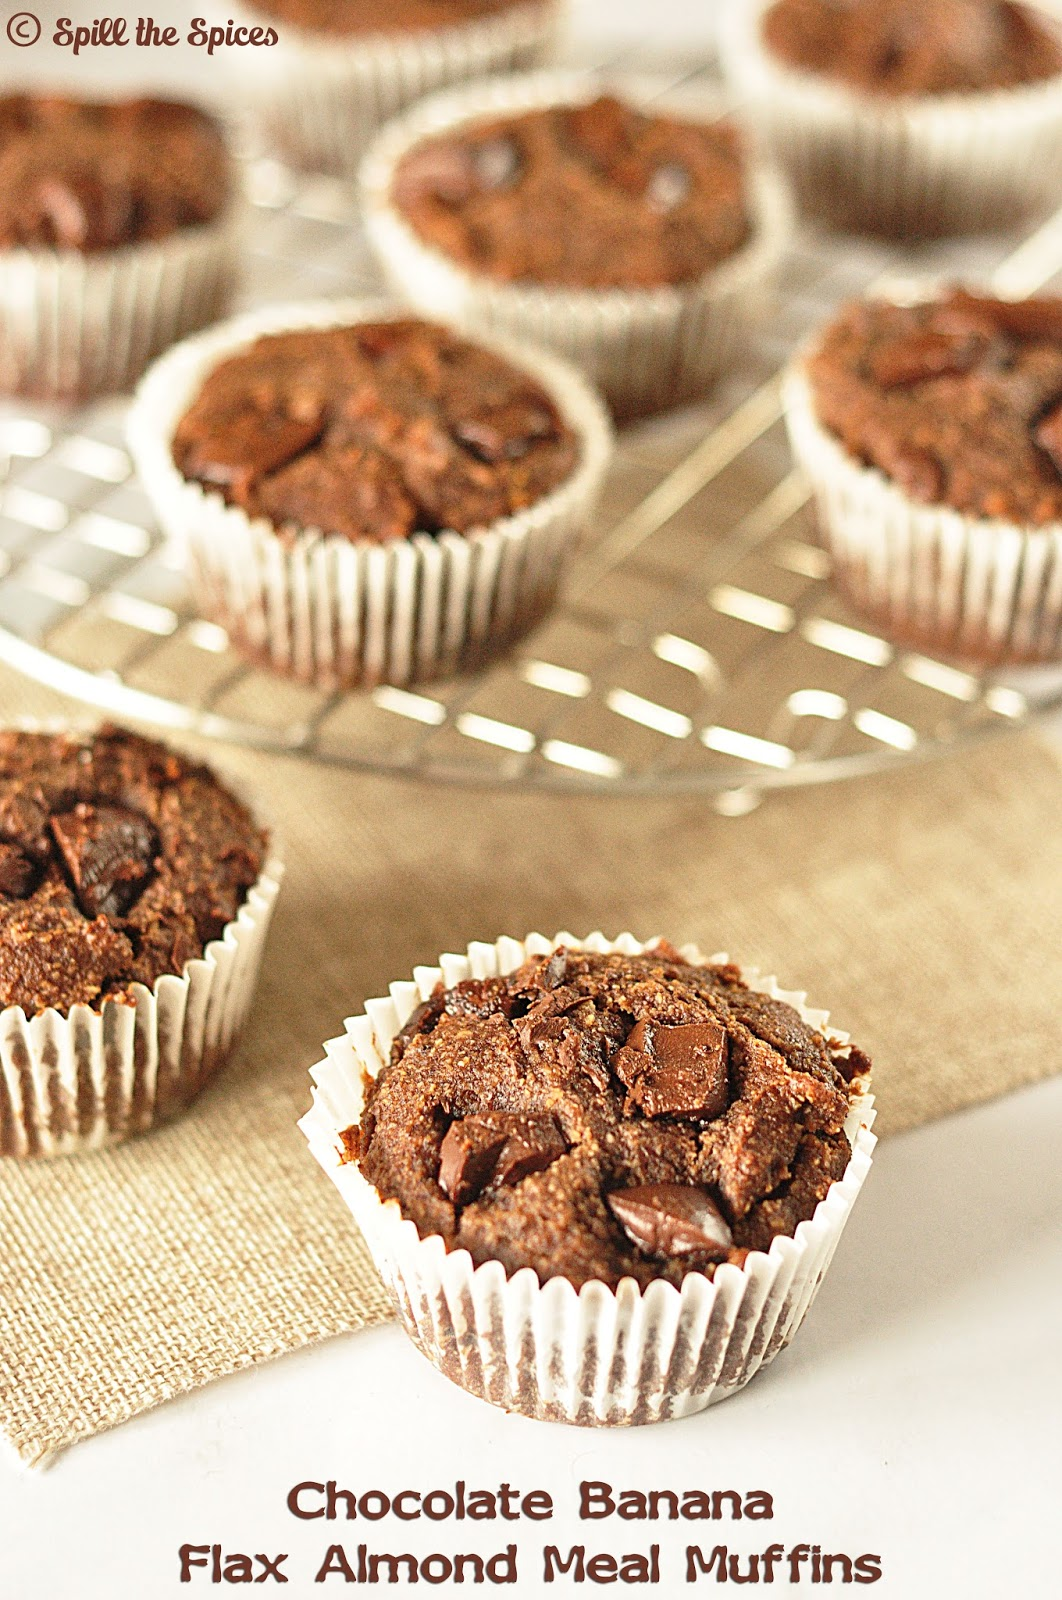 Chocolate Banana Flax Almond Meal Muffins #BreadBakers | Spill the ...